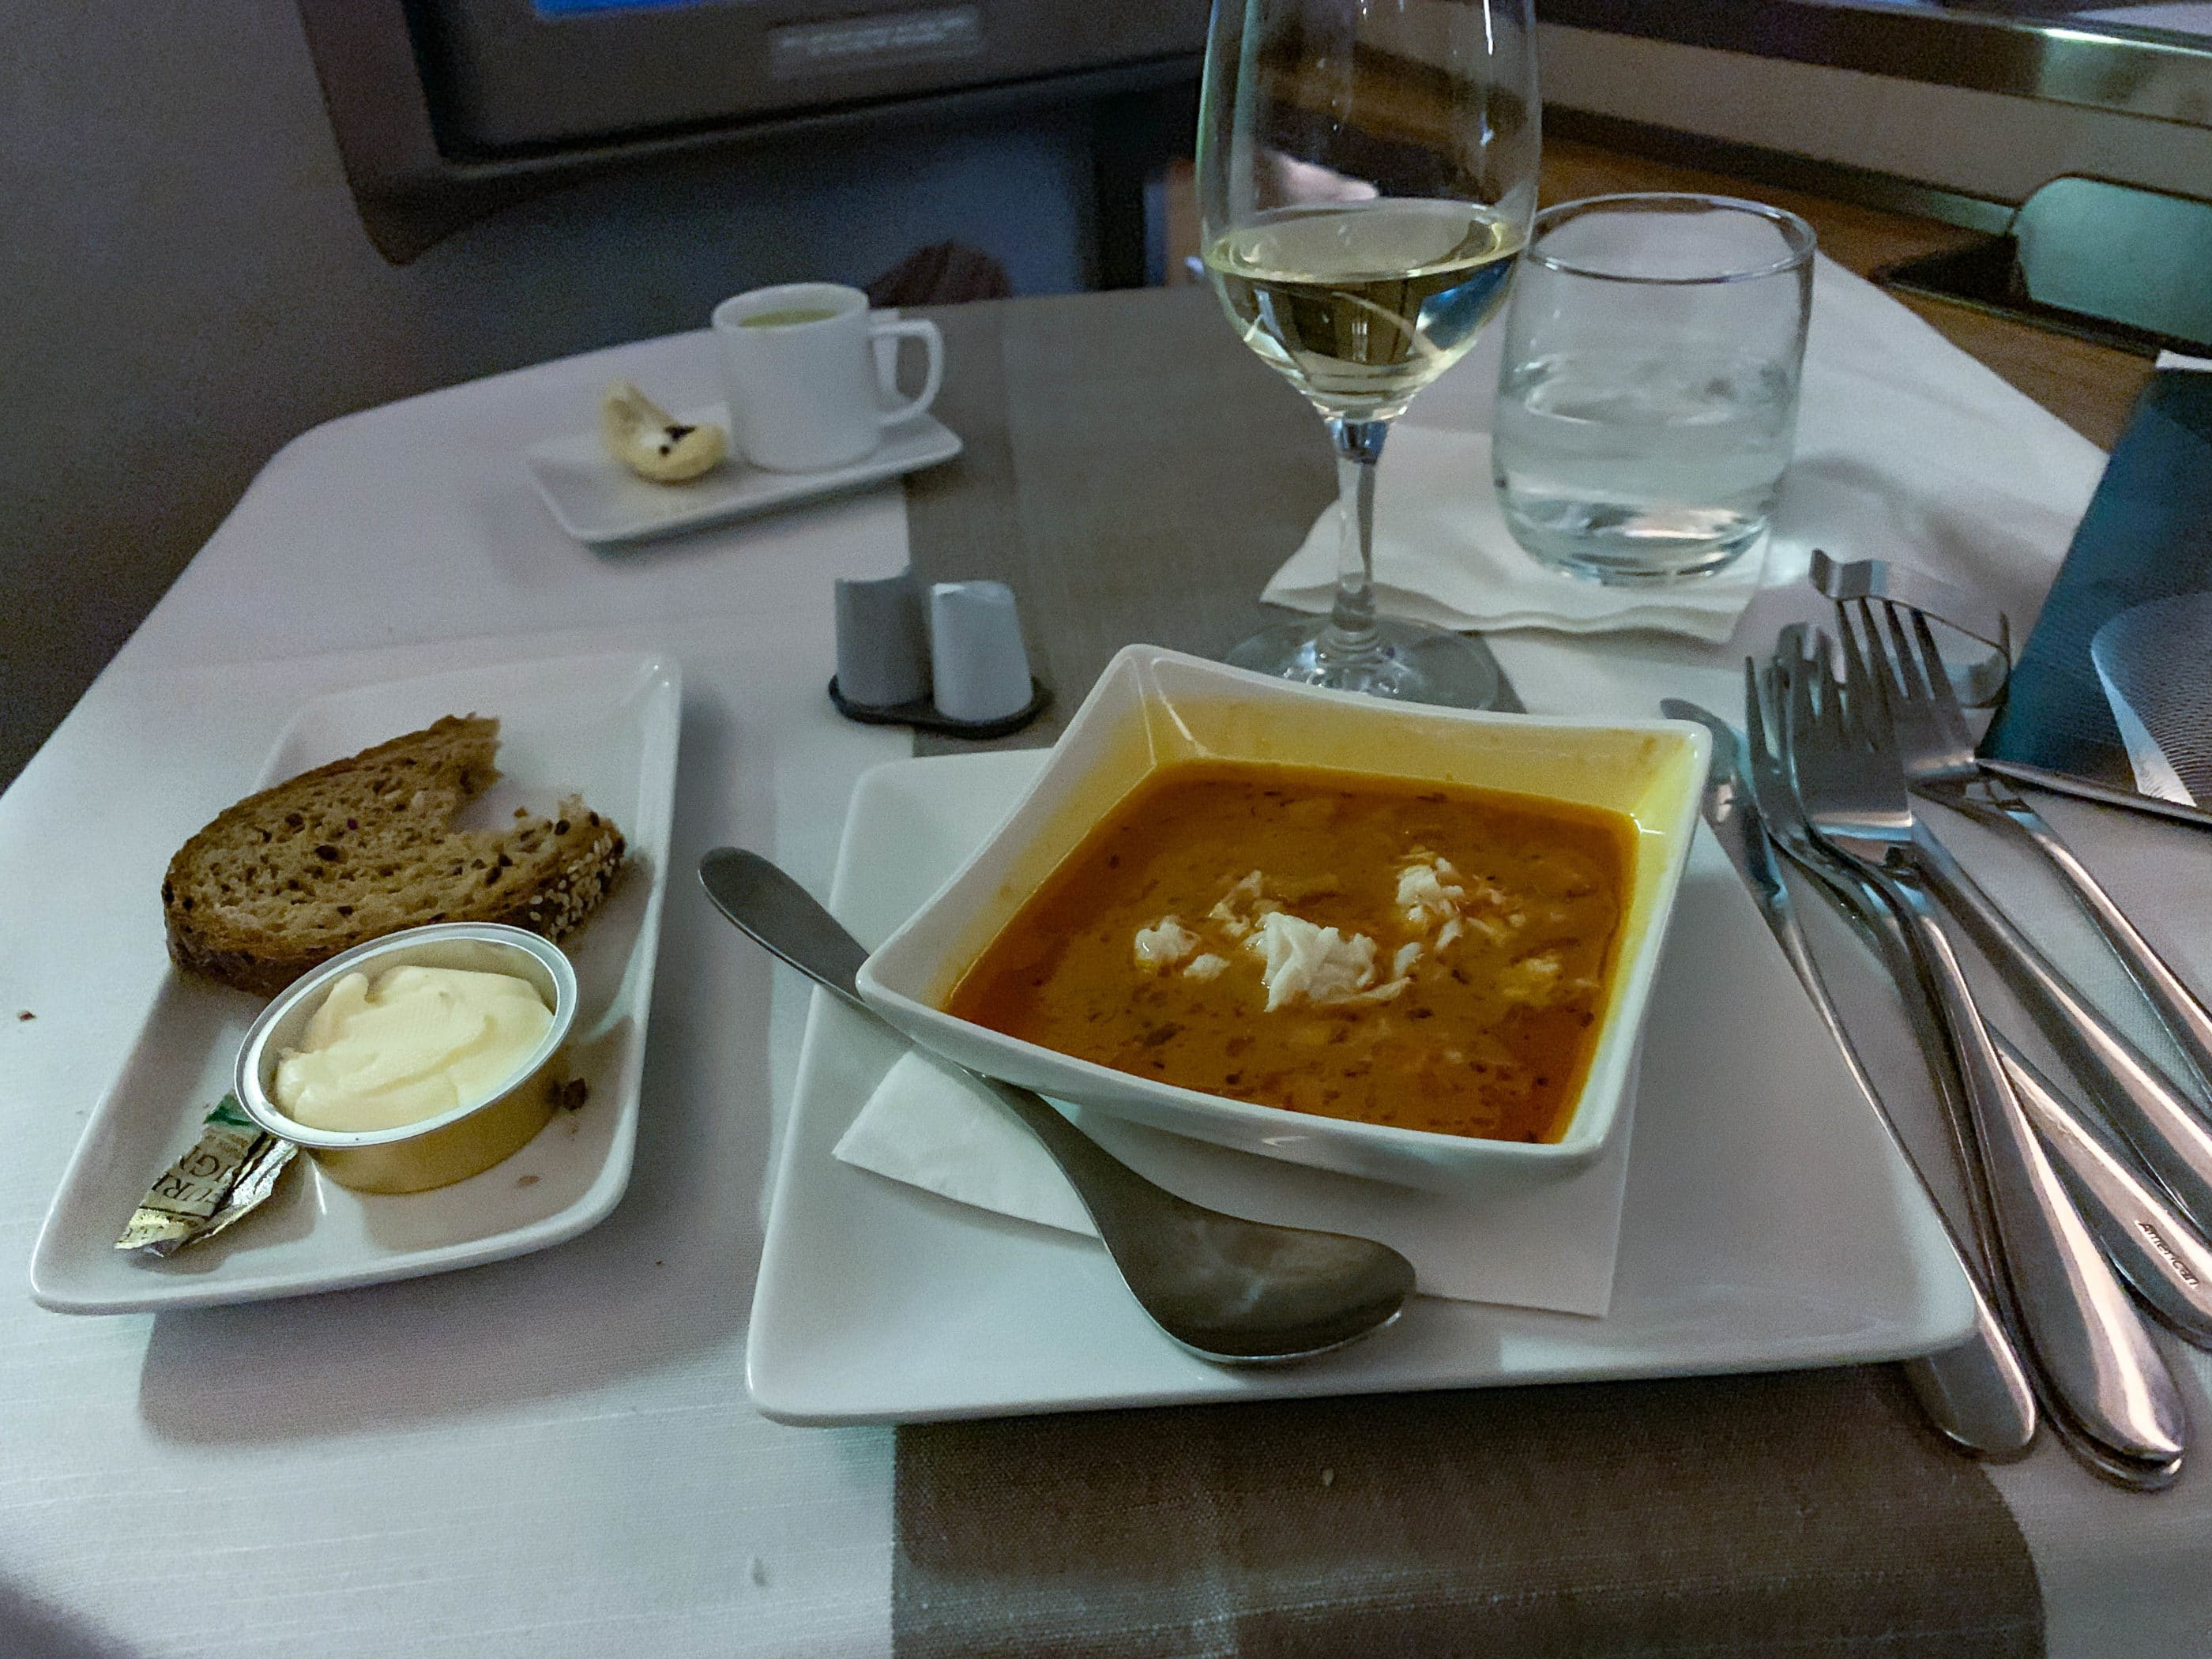 Lobster saffron bisque on American Airlines first class 777-300 from HKG-LAX